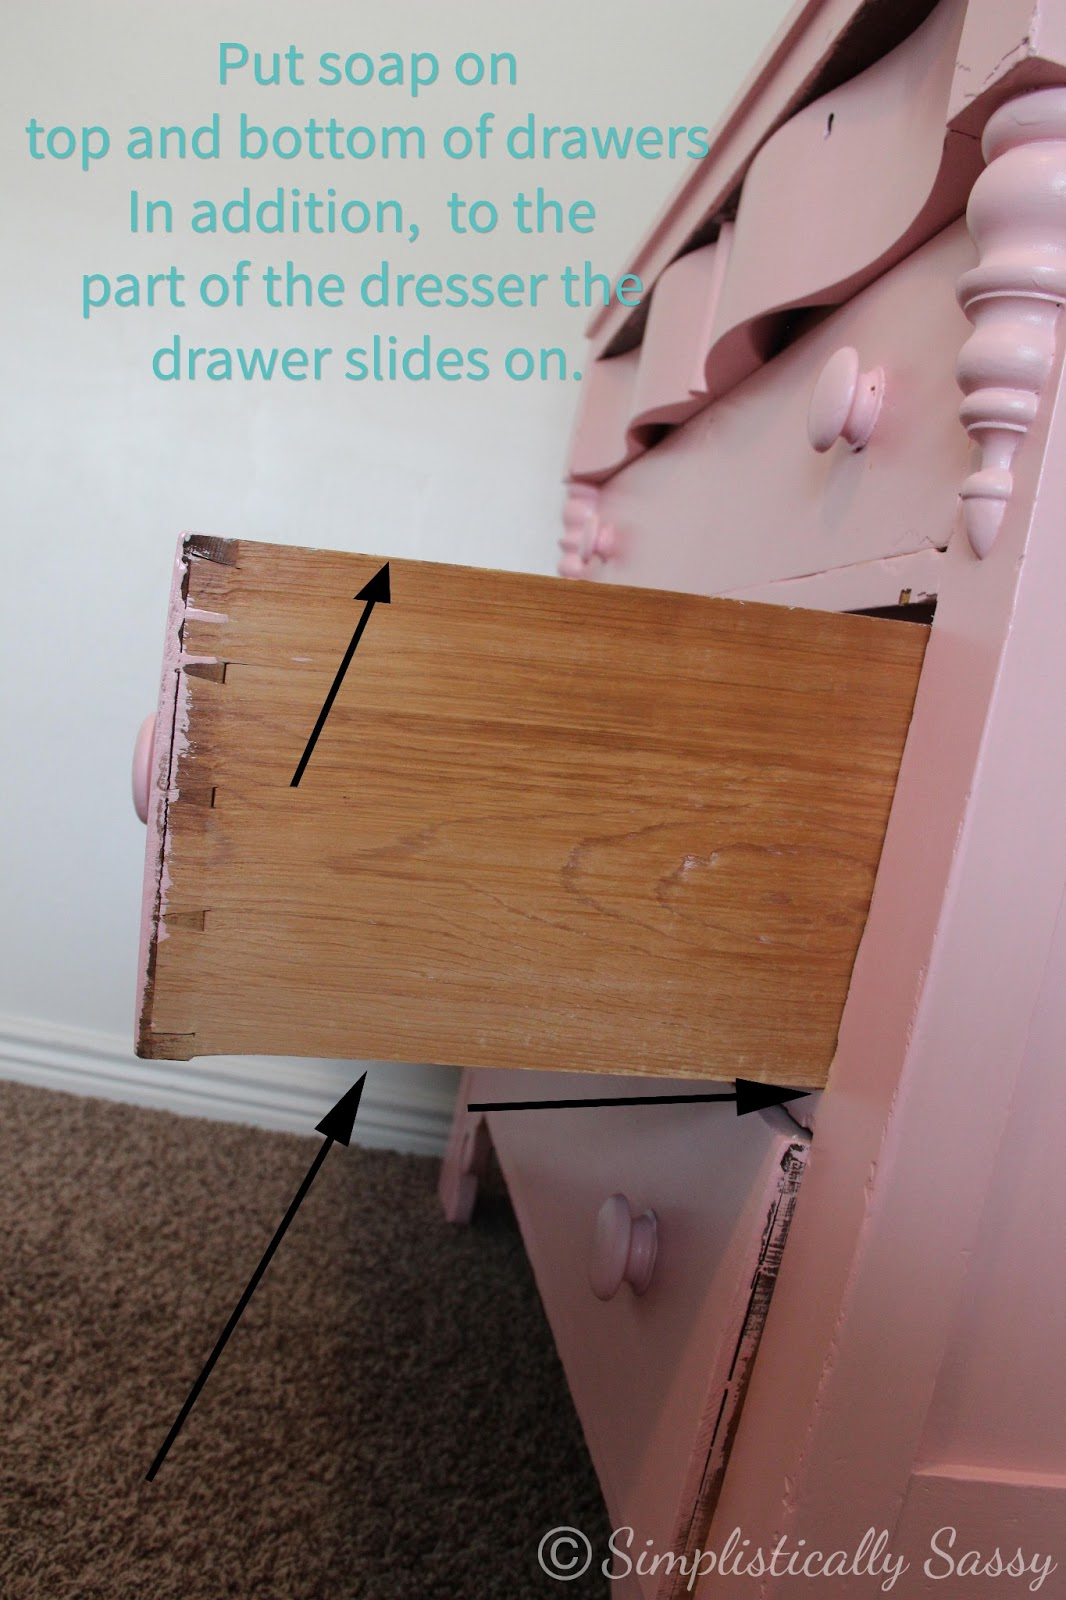 How to make dresser drawers - How To Make Dresser Drawers Slide Easily